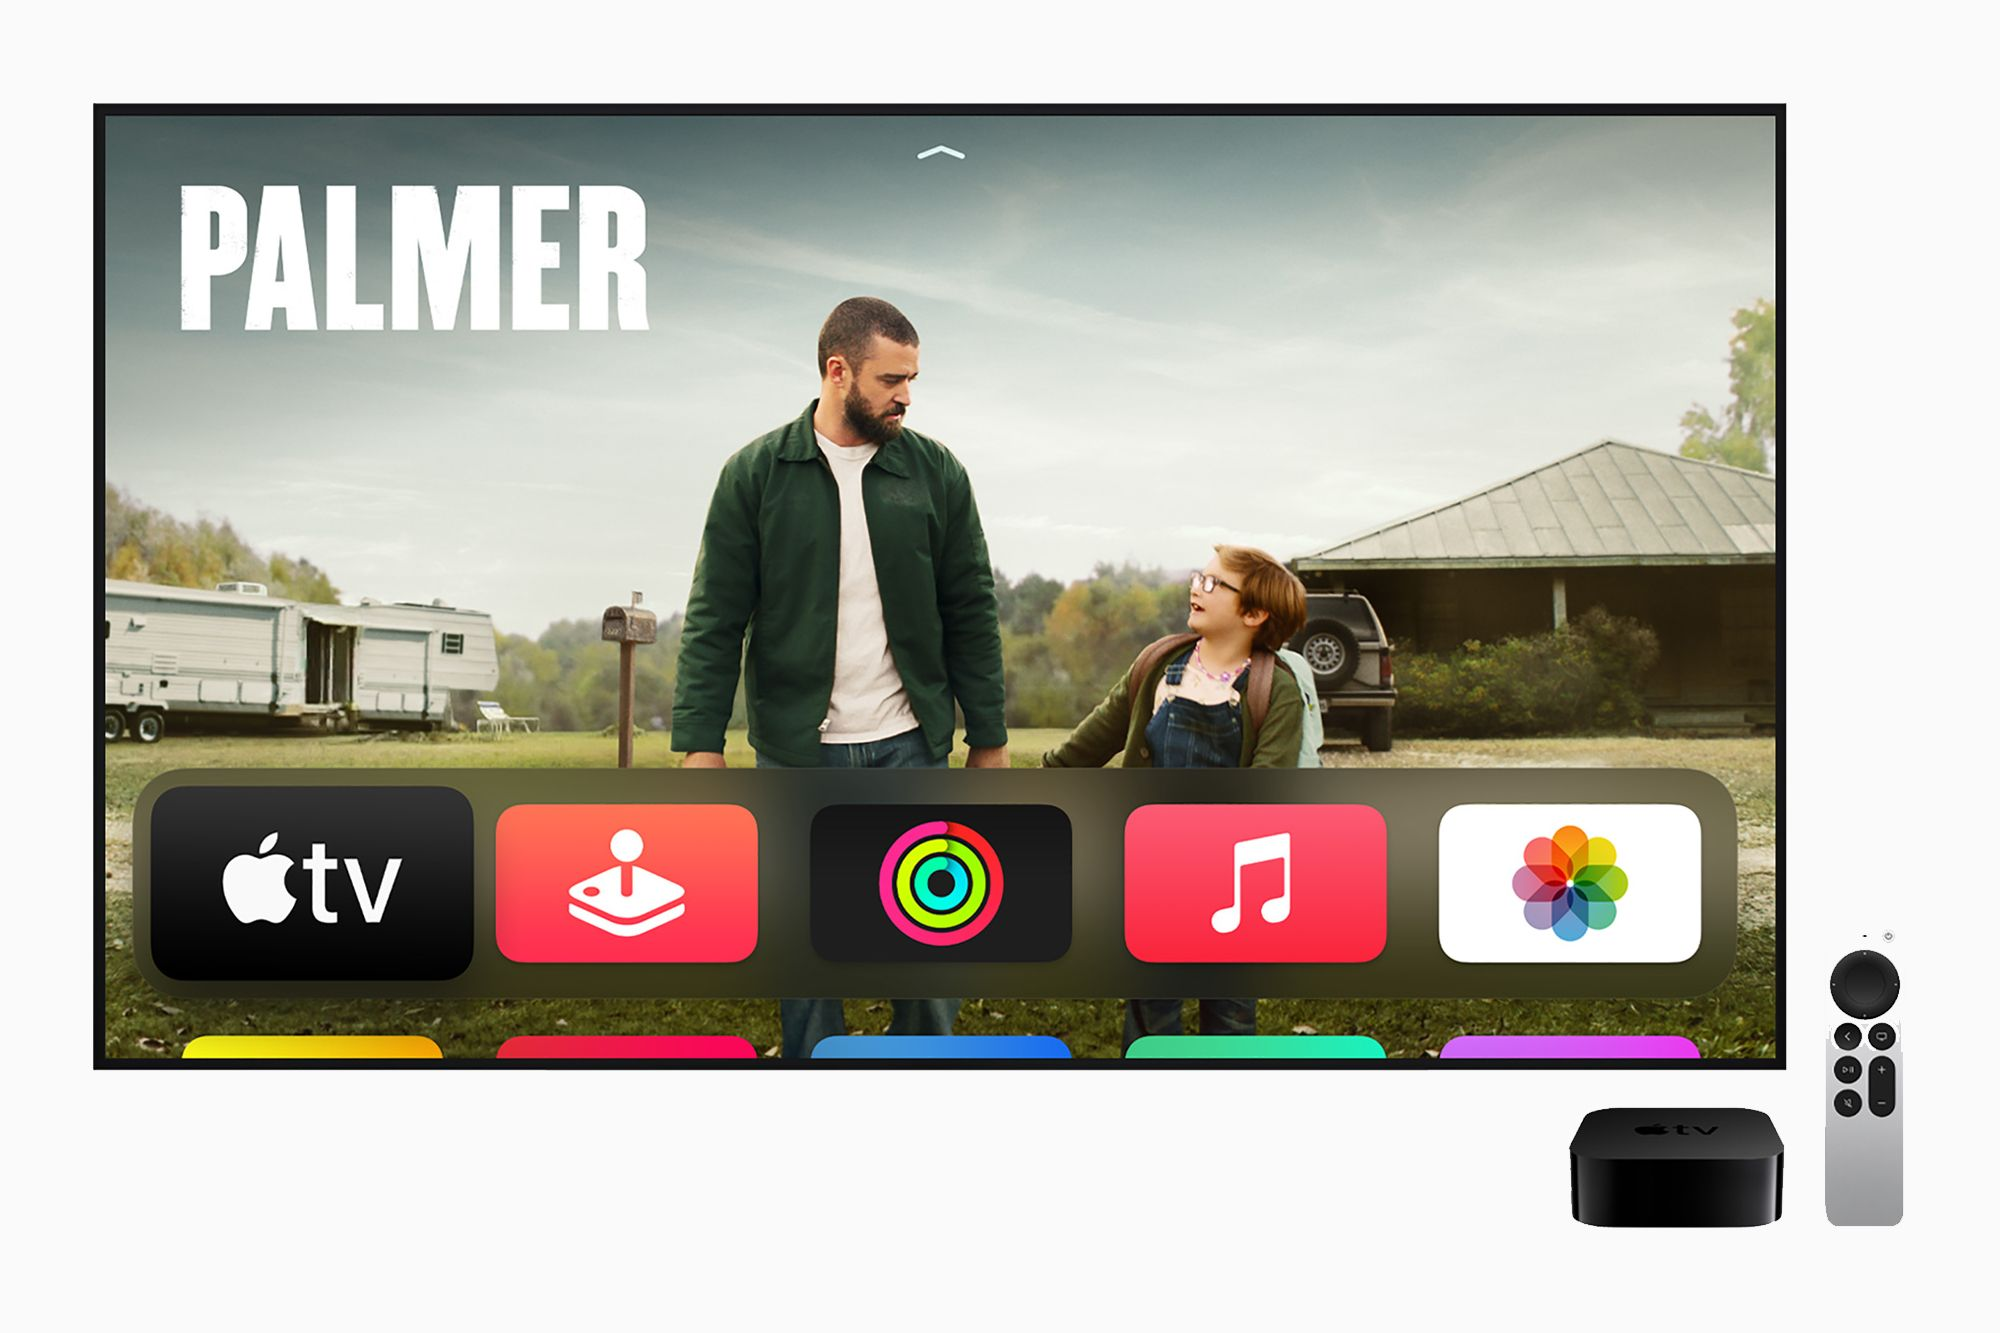 The Apple TV 4K can double as your Apple HomeKit hub for you to control all your Homekit-enabled devices Image: Courtesy of Apple